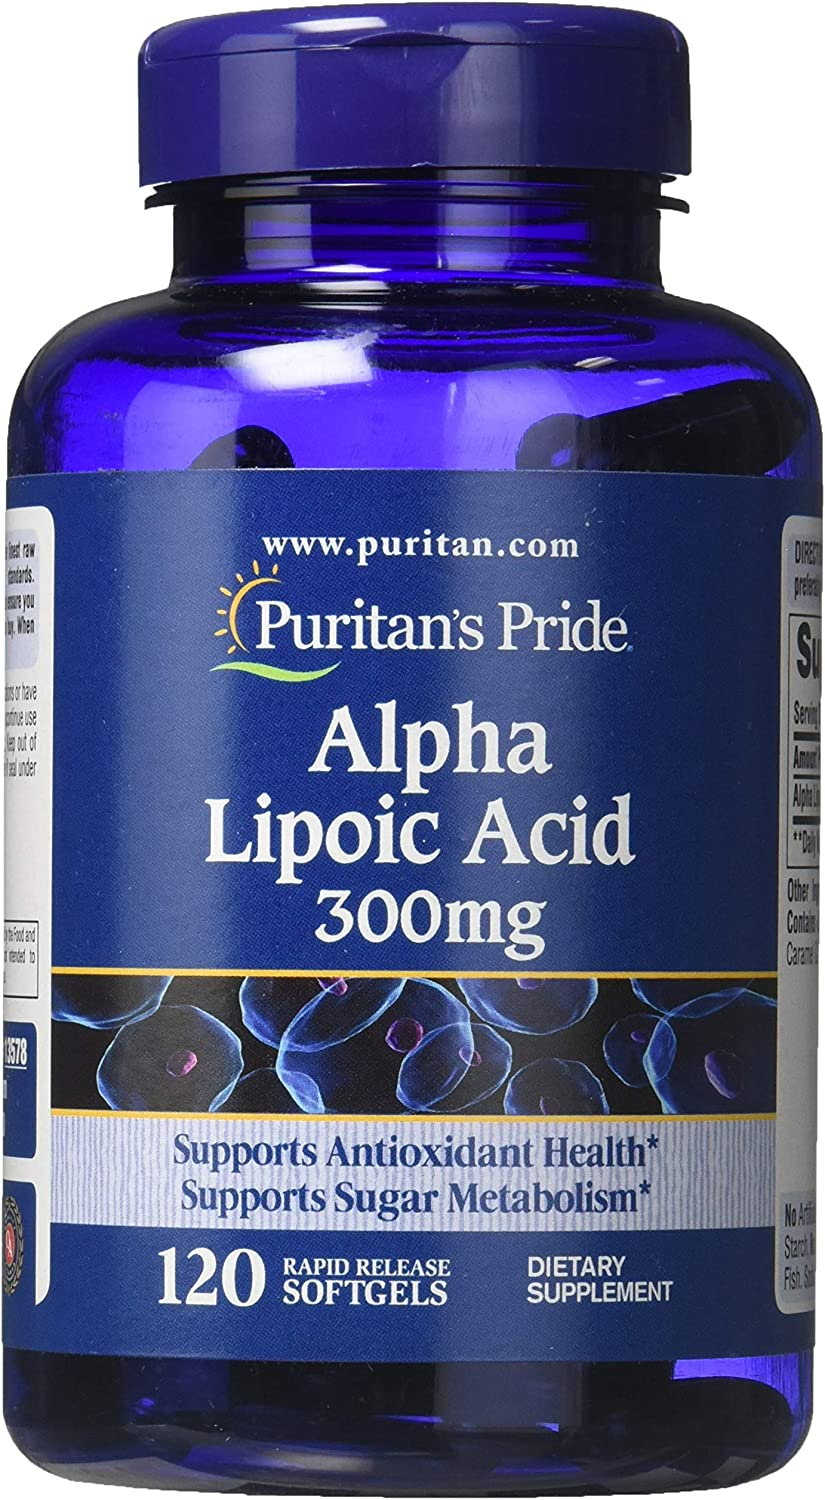 Alpha Lipoic by Puritan's Japan safety Maker New Pride Health Supports 30 Antioxidant